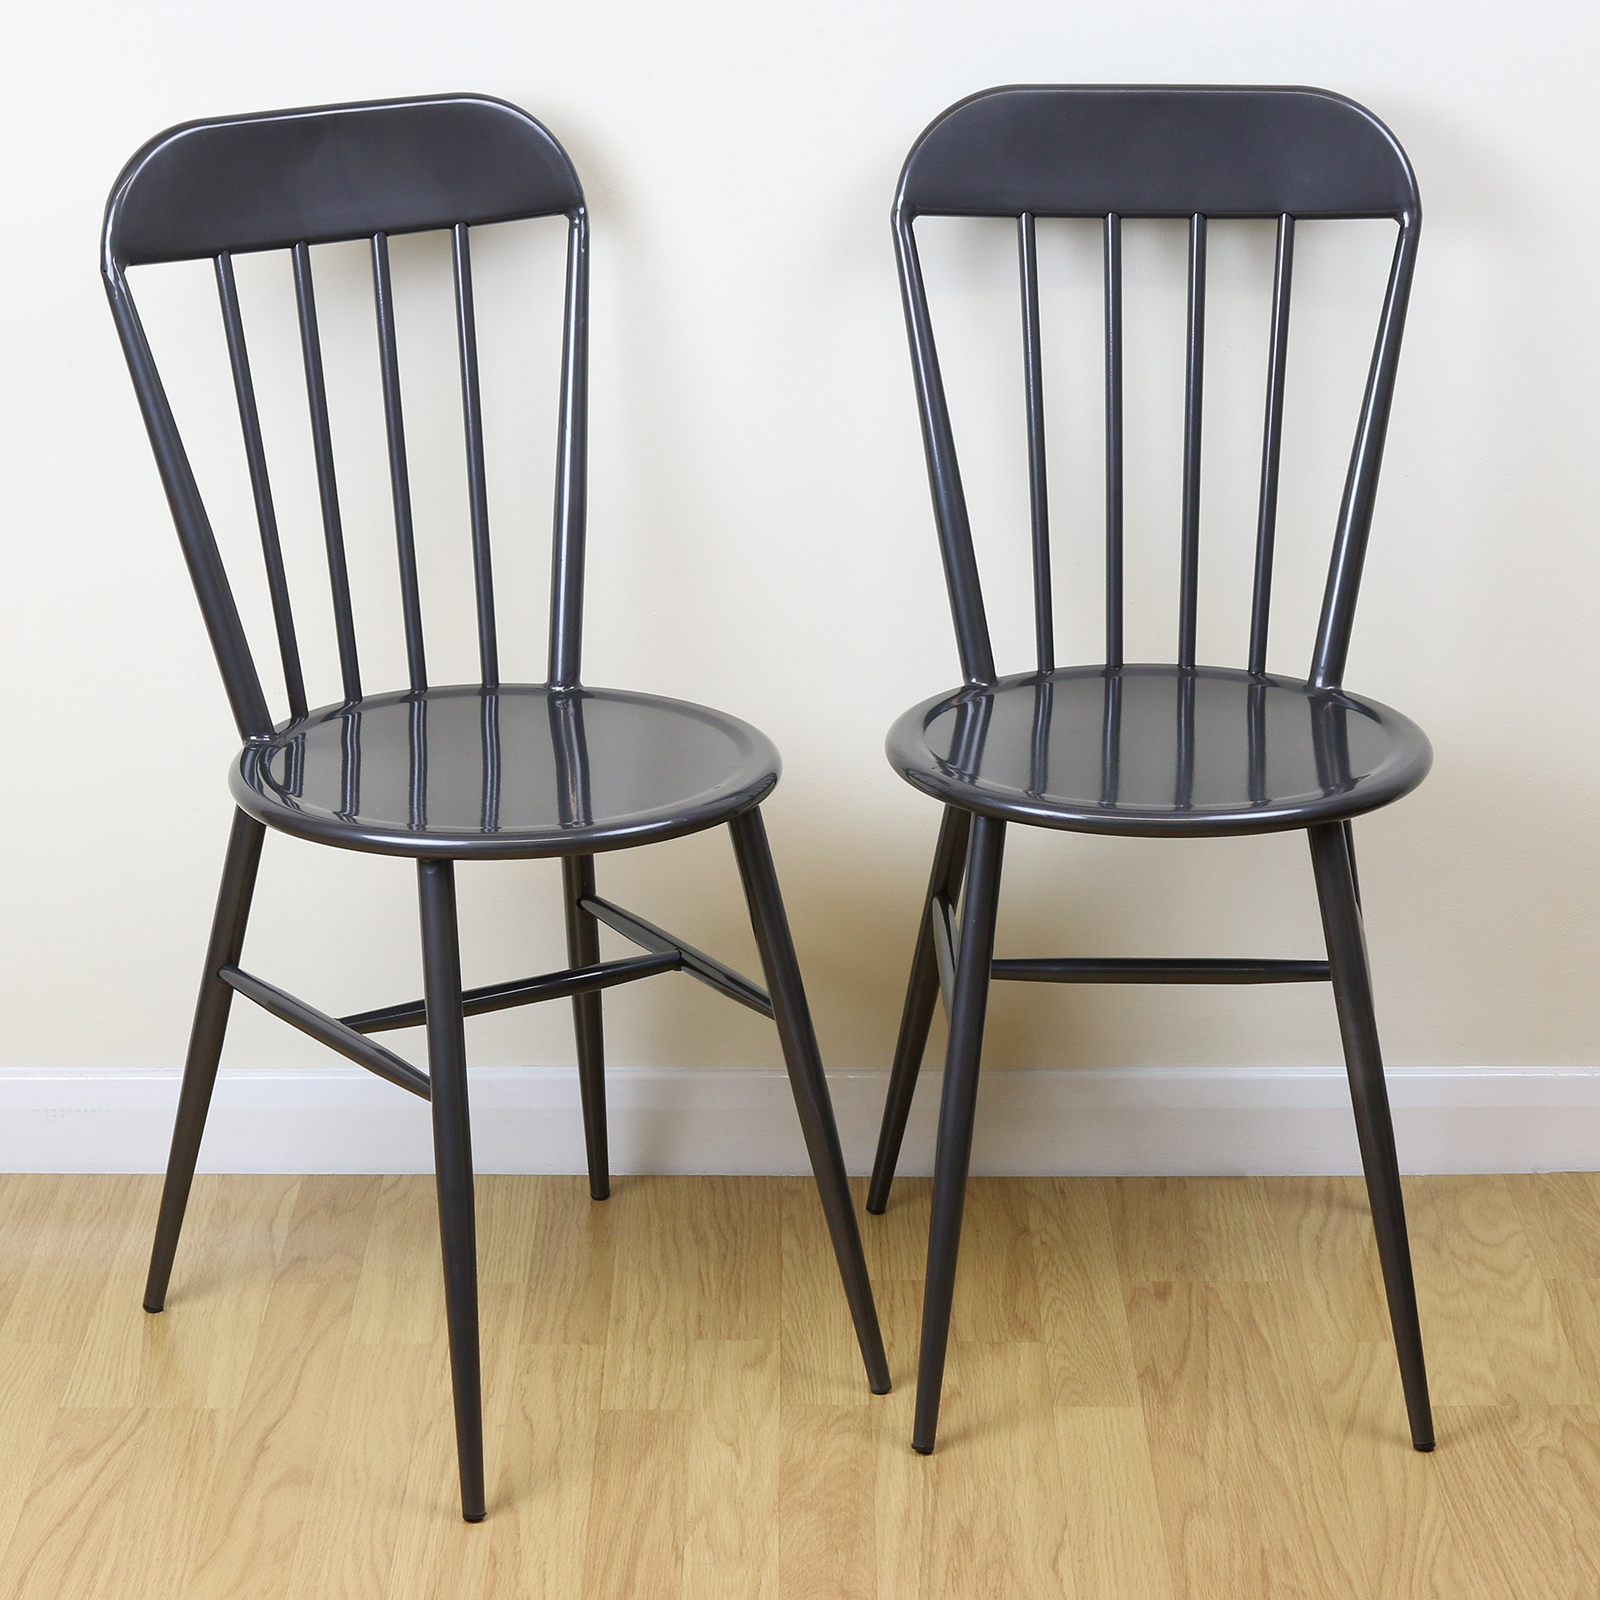 Set of 2 grey metal industrial dining chairs kitchen for Industrial style kitchen chairs